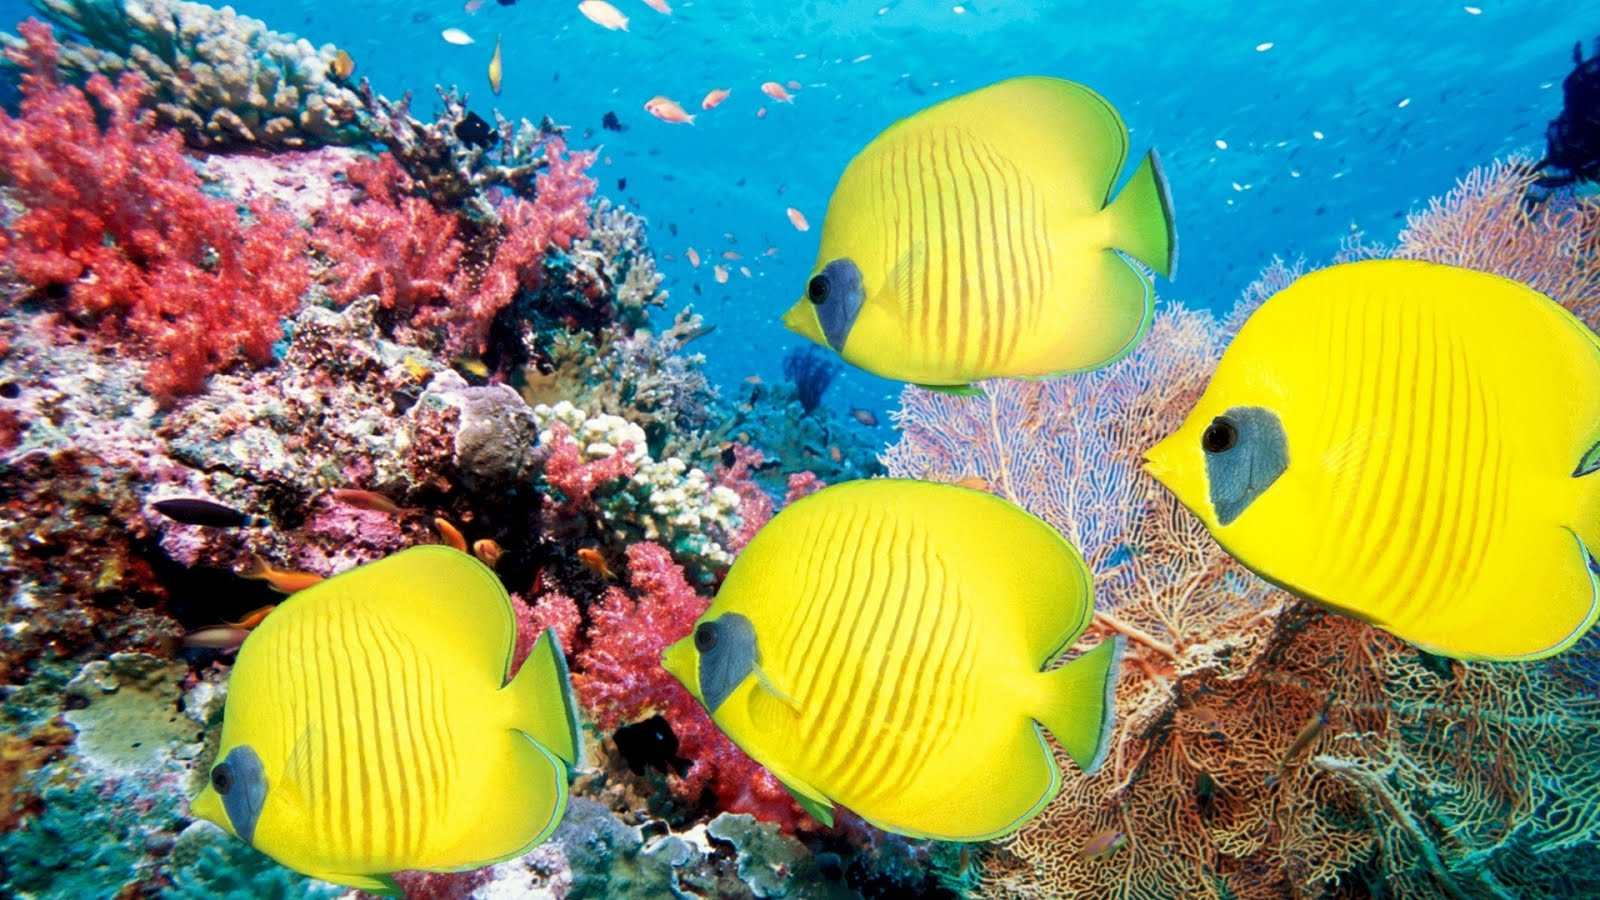 Underwater Sea Creatures And Other Animals Wallpapers